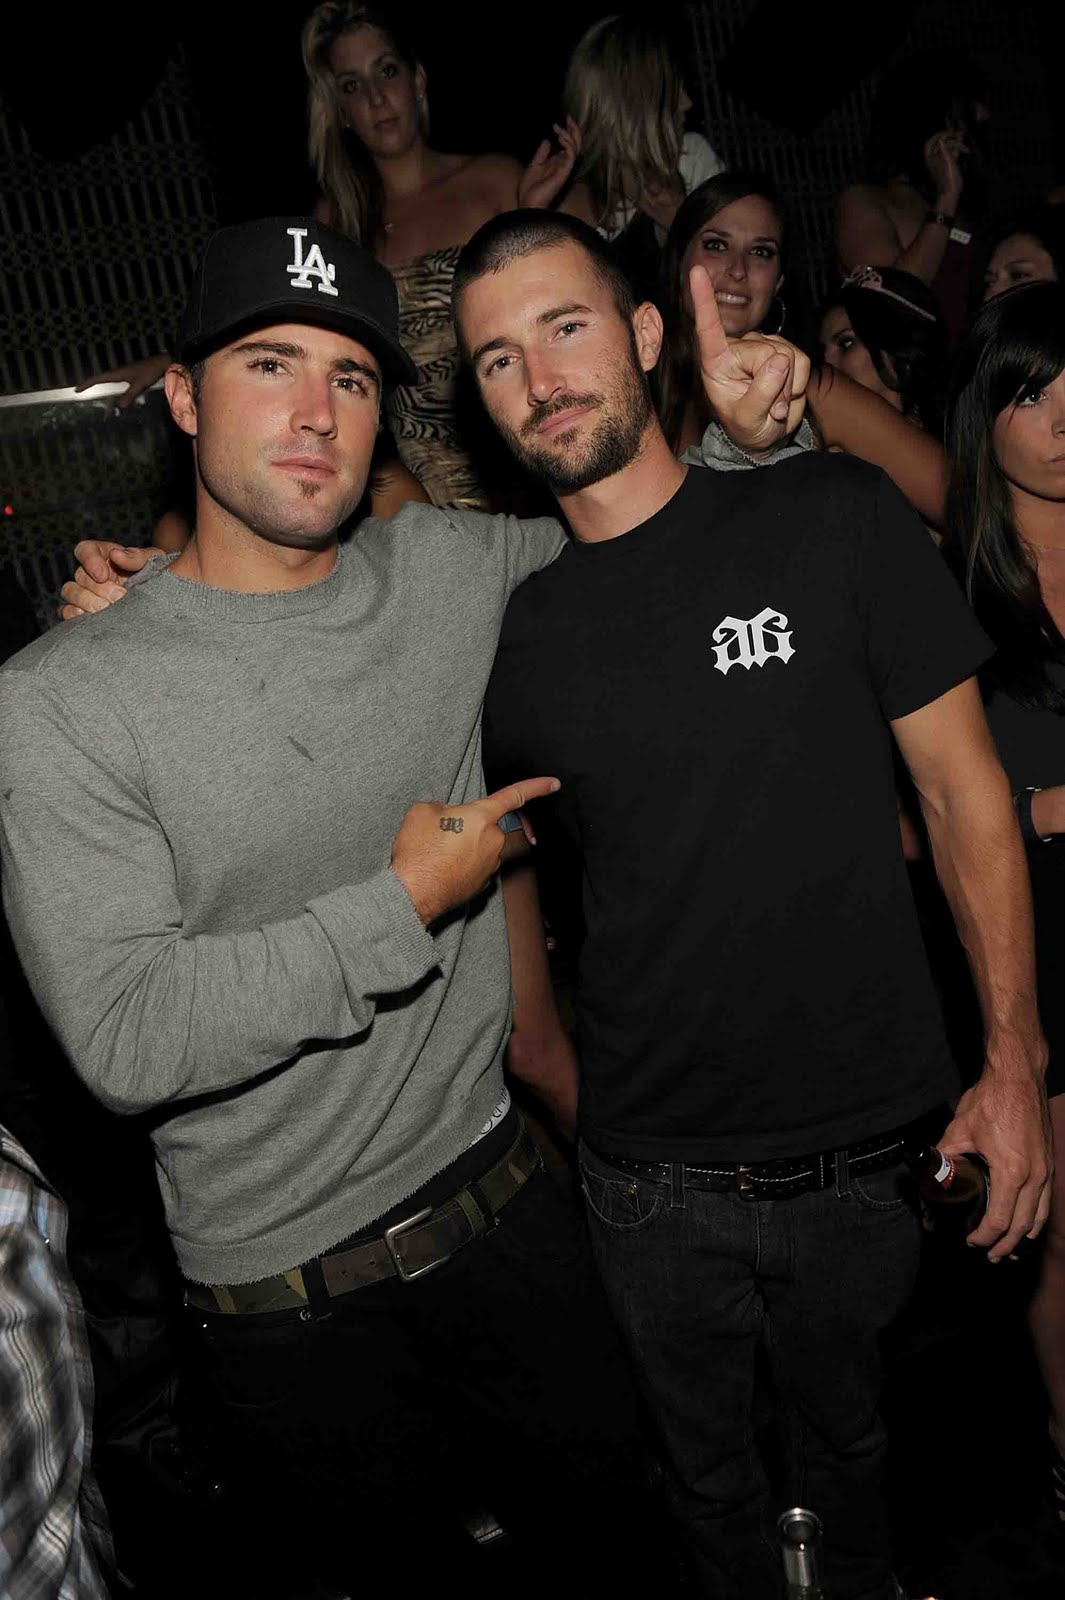 Brody Jenner - Photo Colection